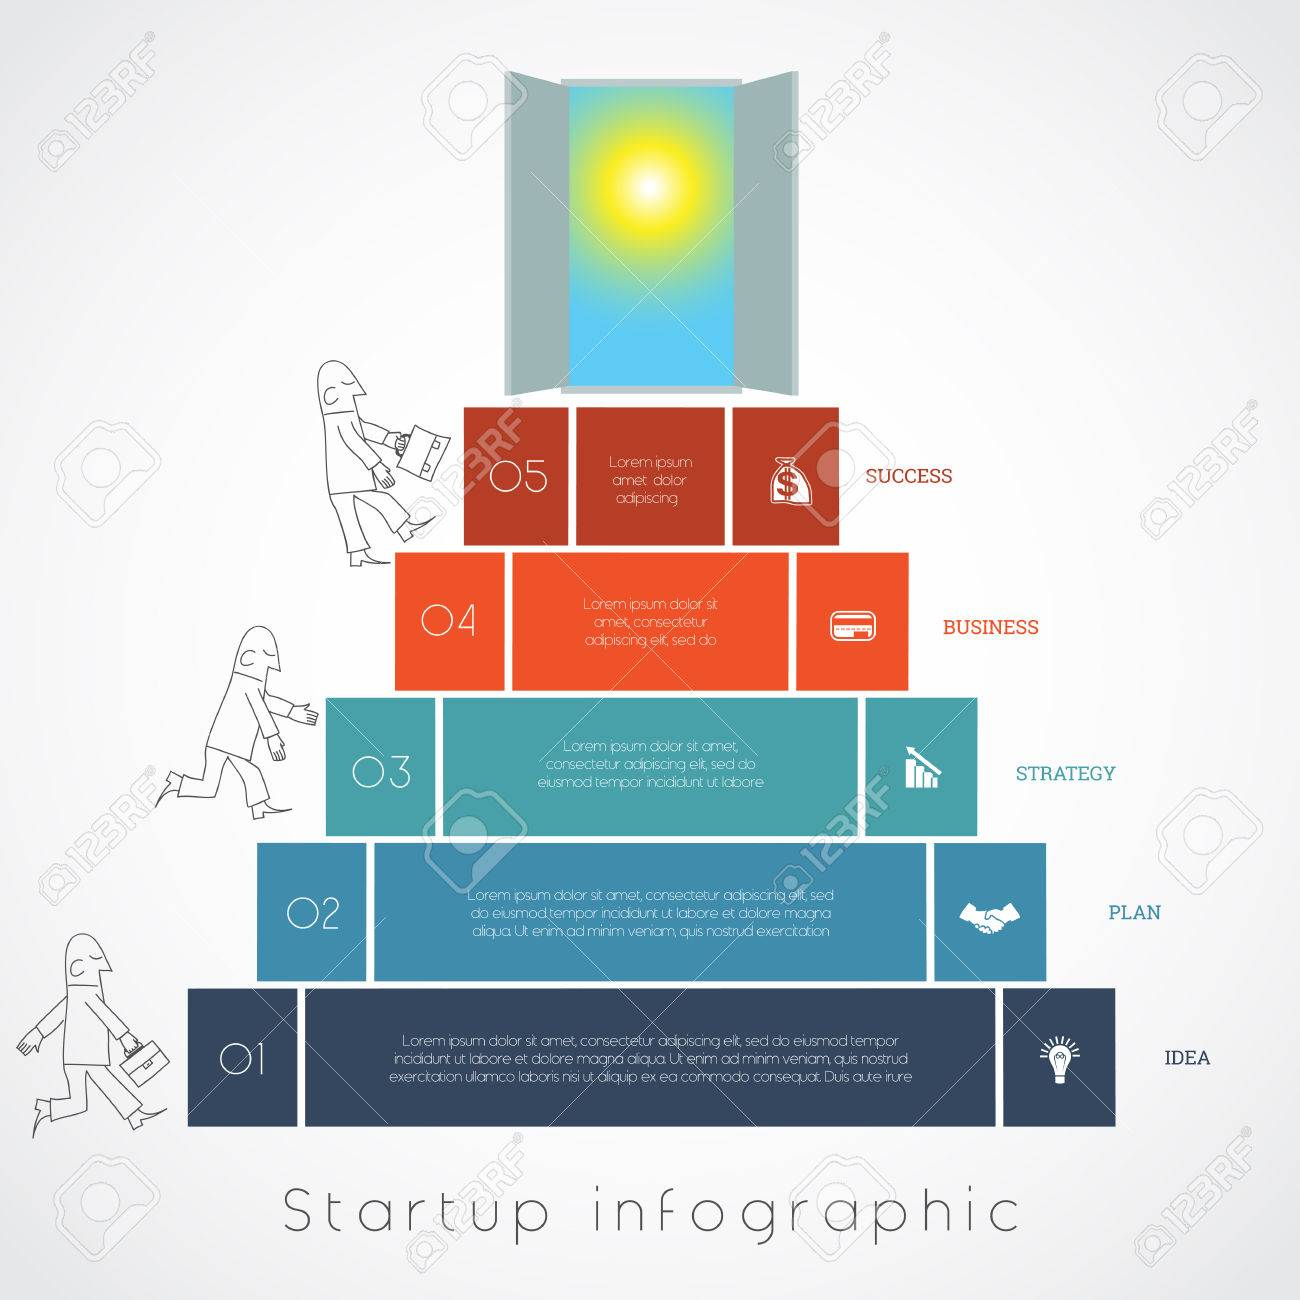 Sun Diagram Used In Business Wiring Schematics Infographics For Success Startup Businessman Steps From Earth